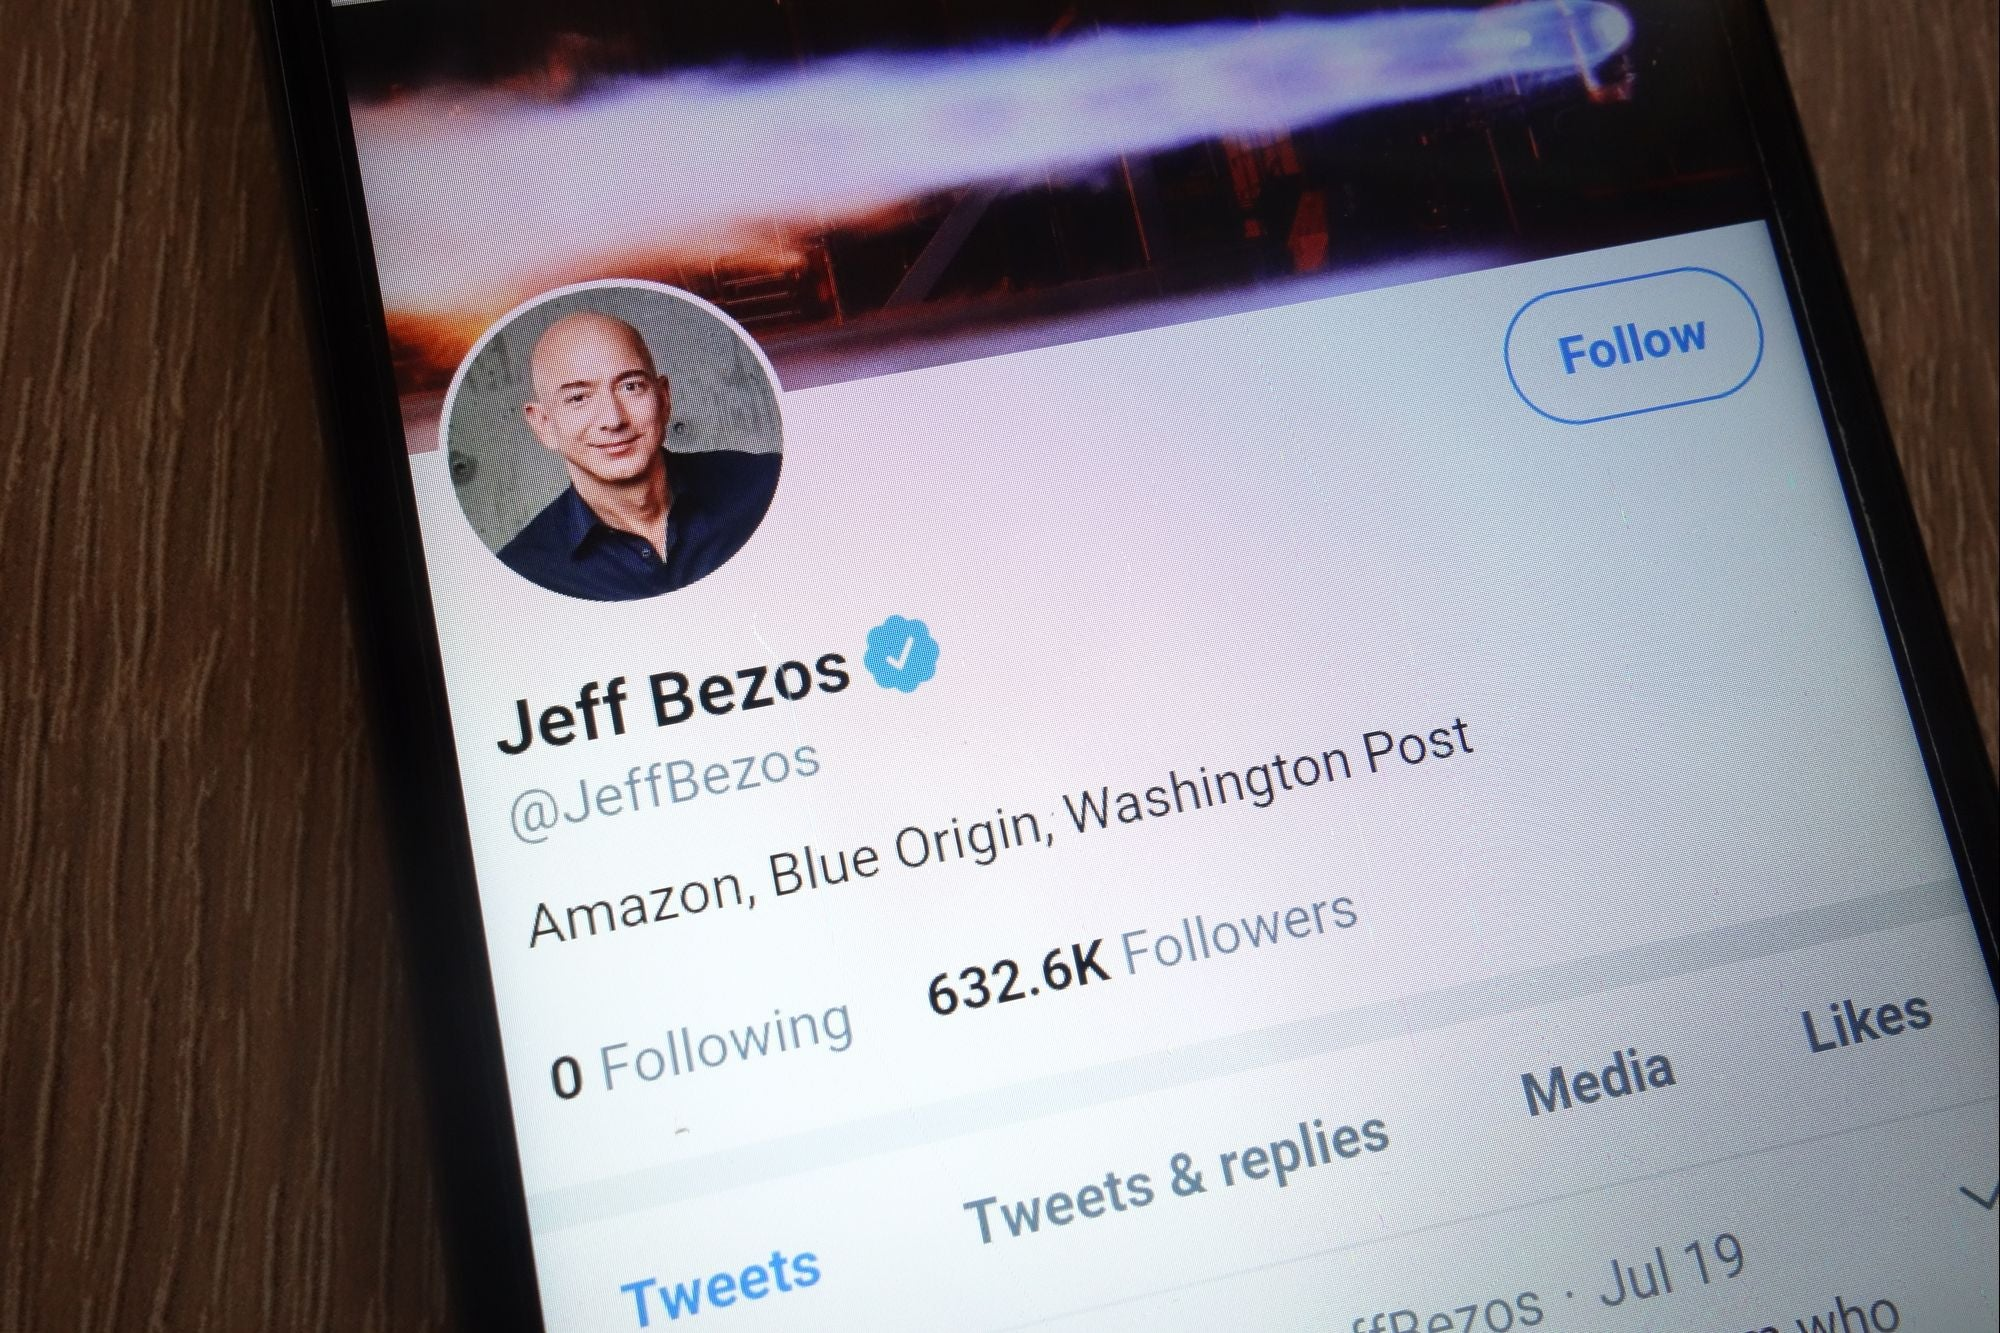 Jeff Bezos will give 10 billion of his fortune for climate change